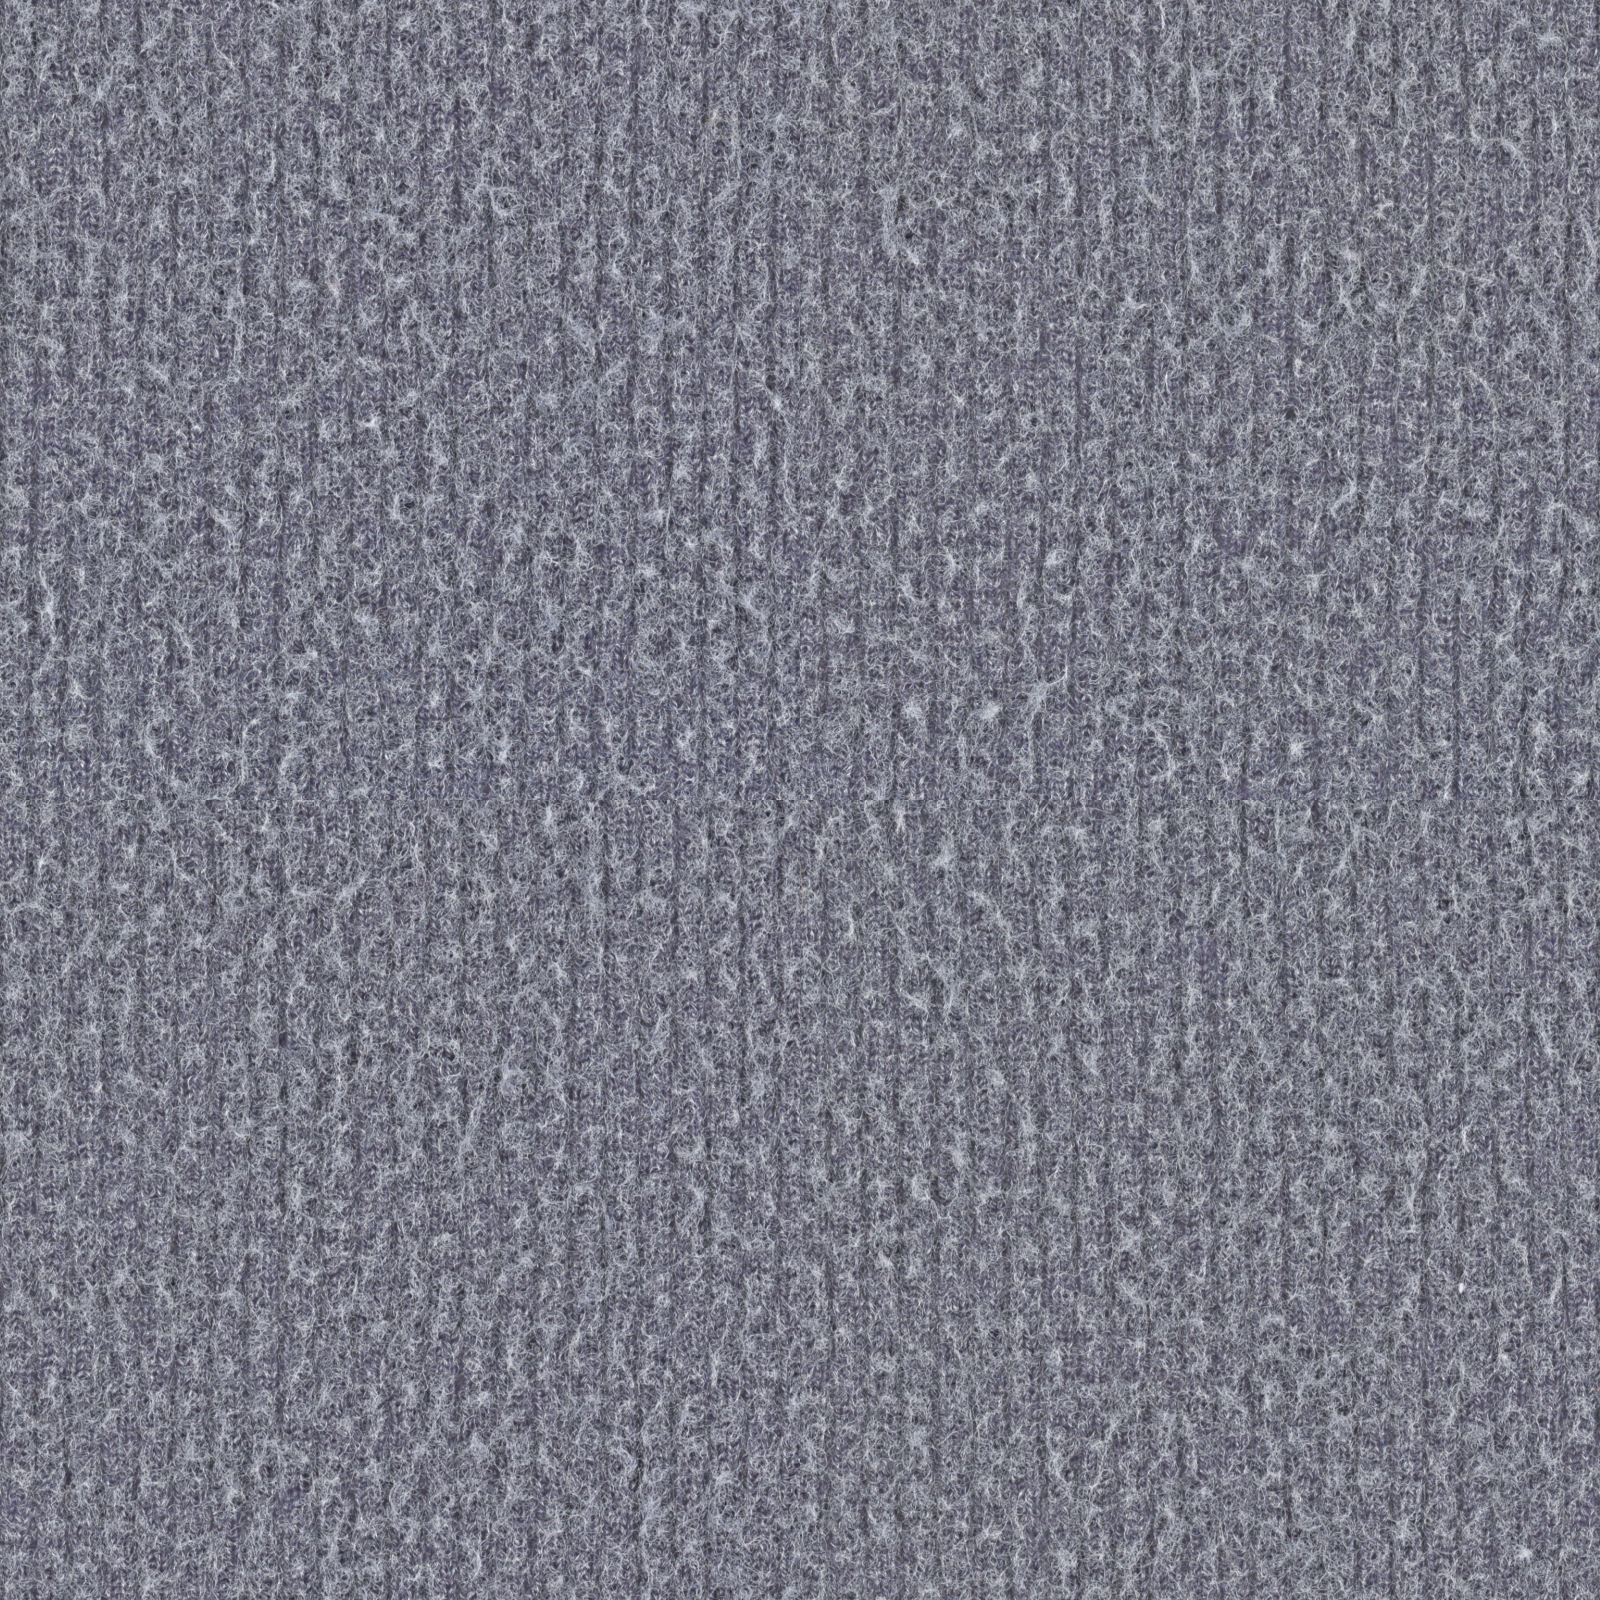 Cream Carpet Texture Seamless